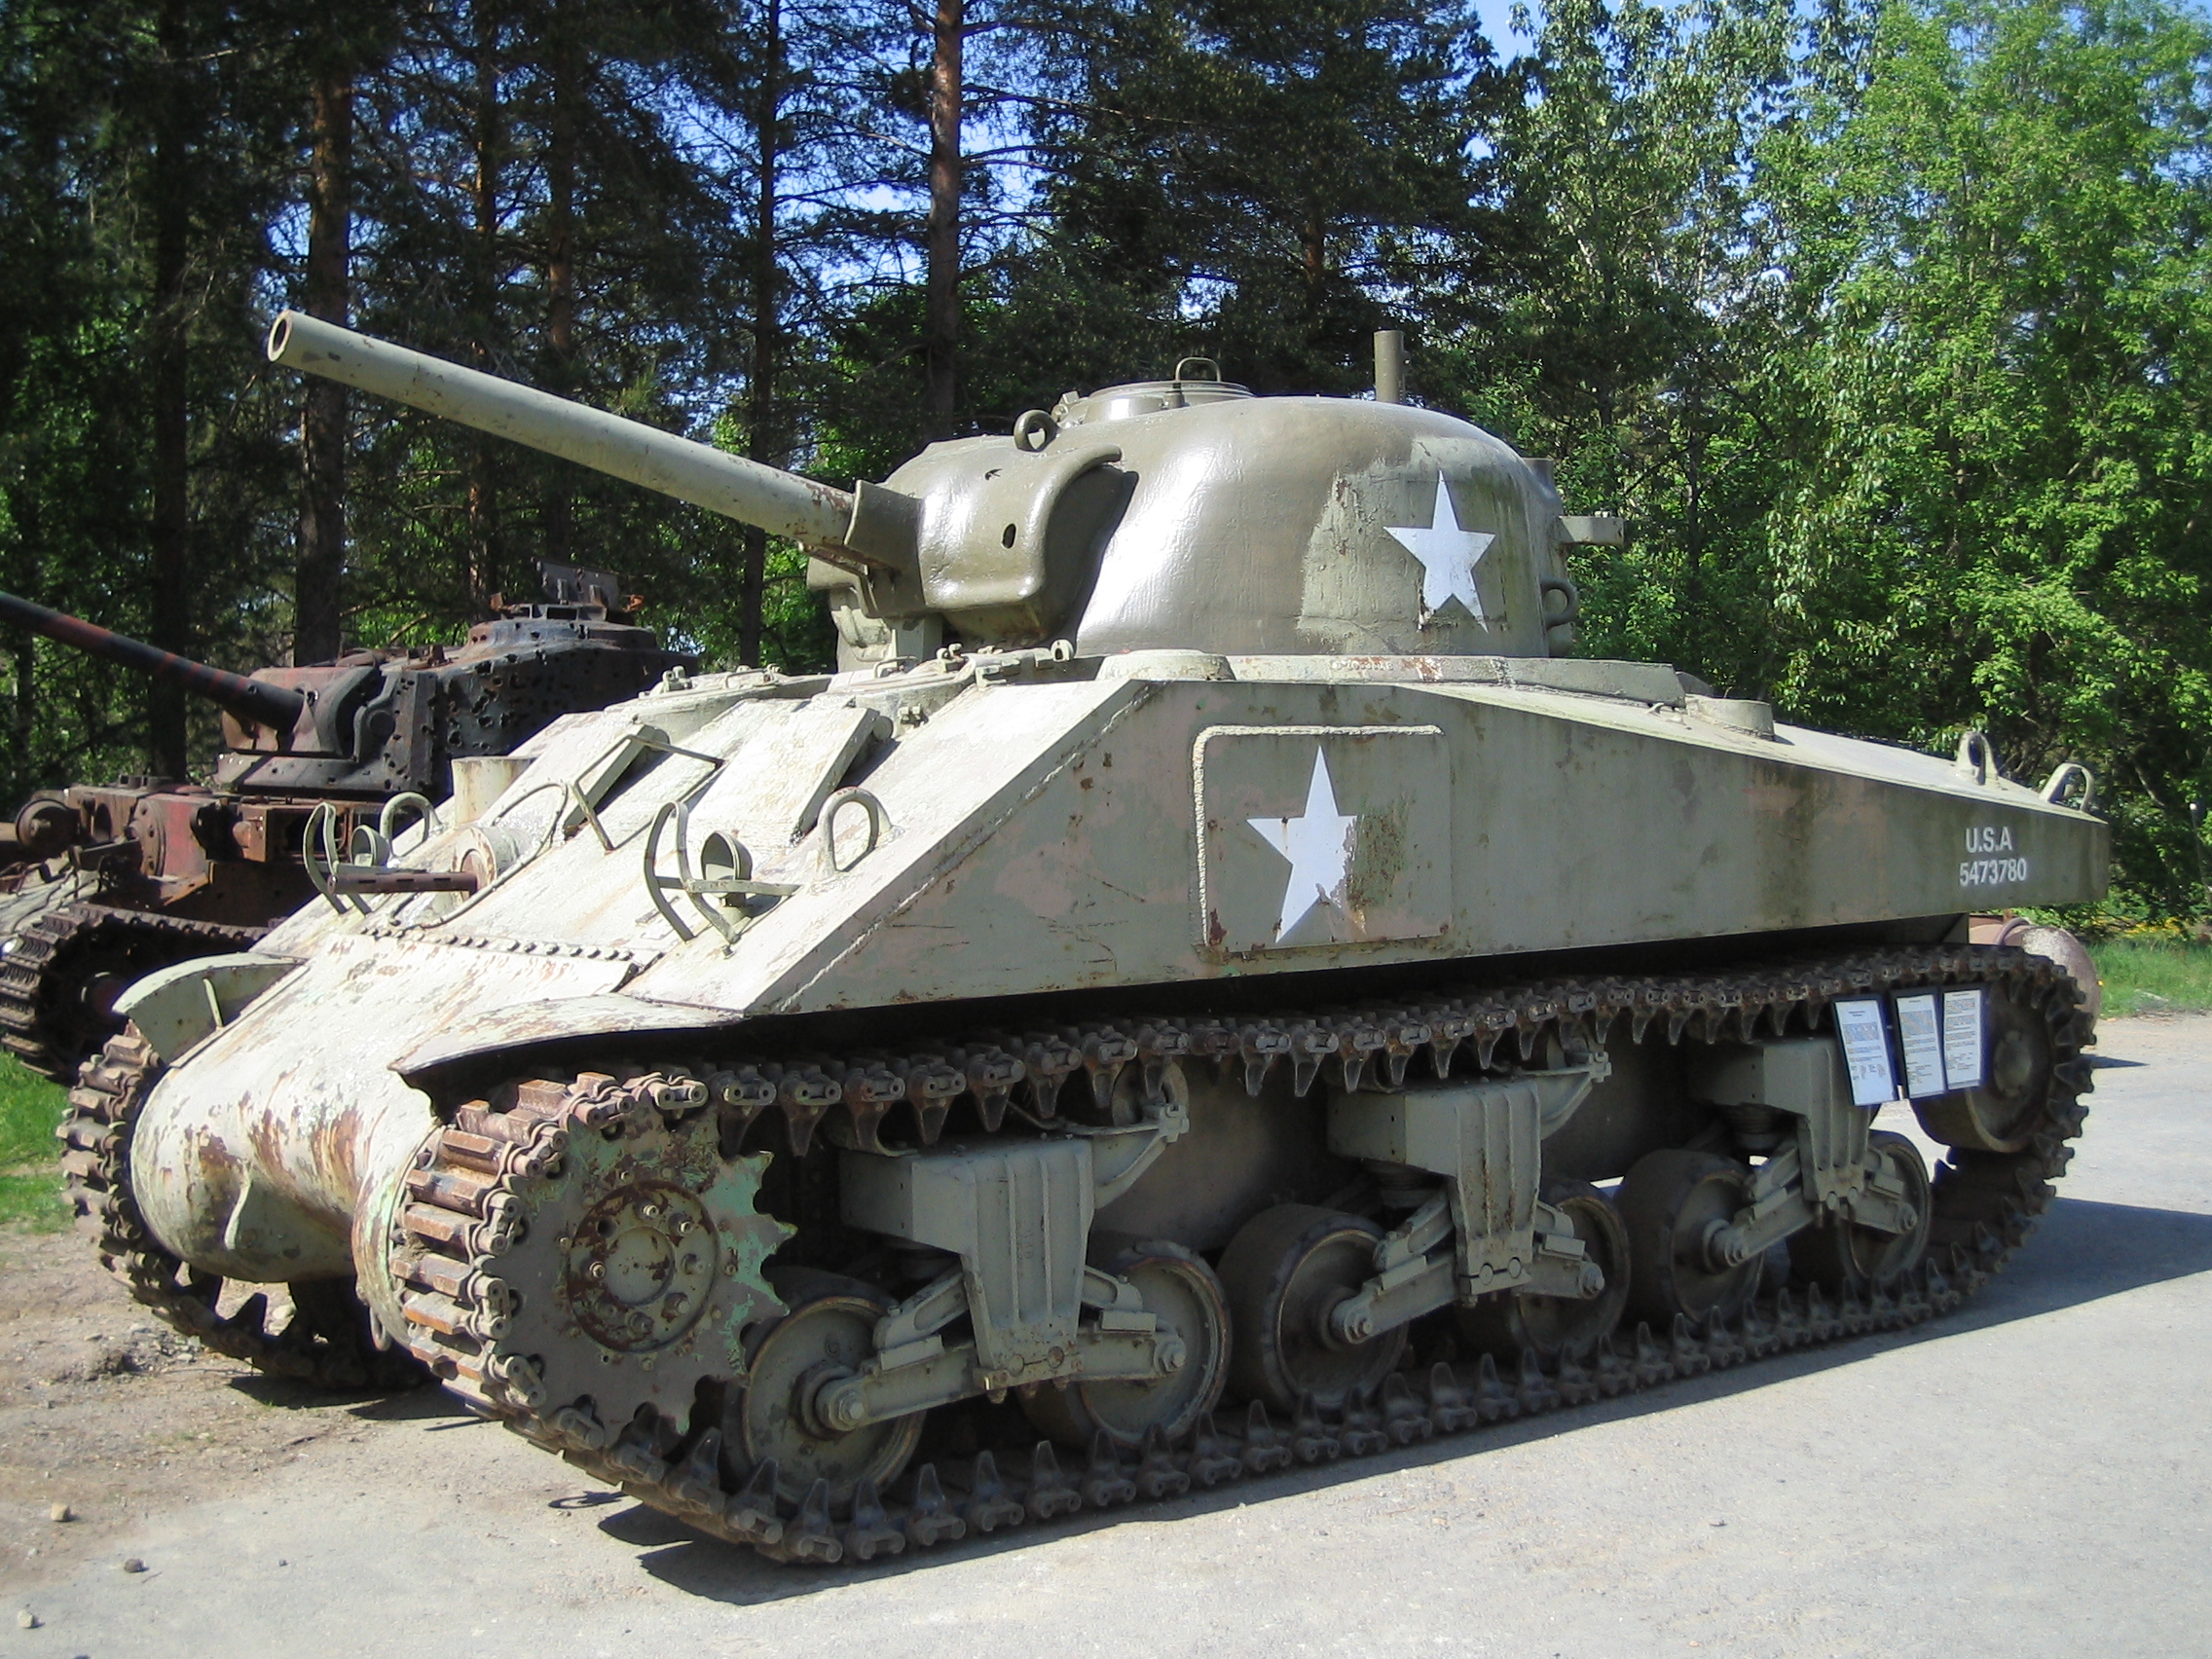 The Sherman M4 Medium Tank: Not the First Type into